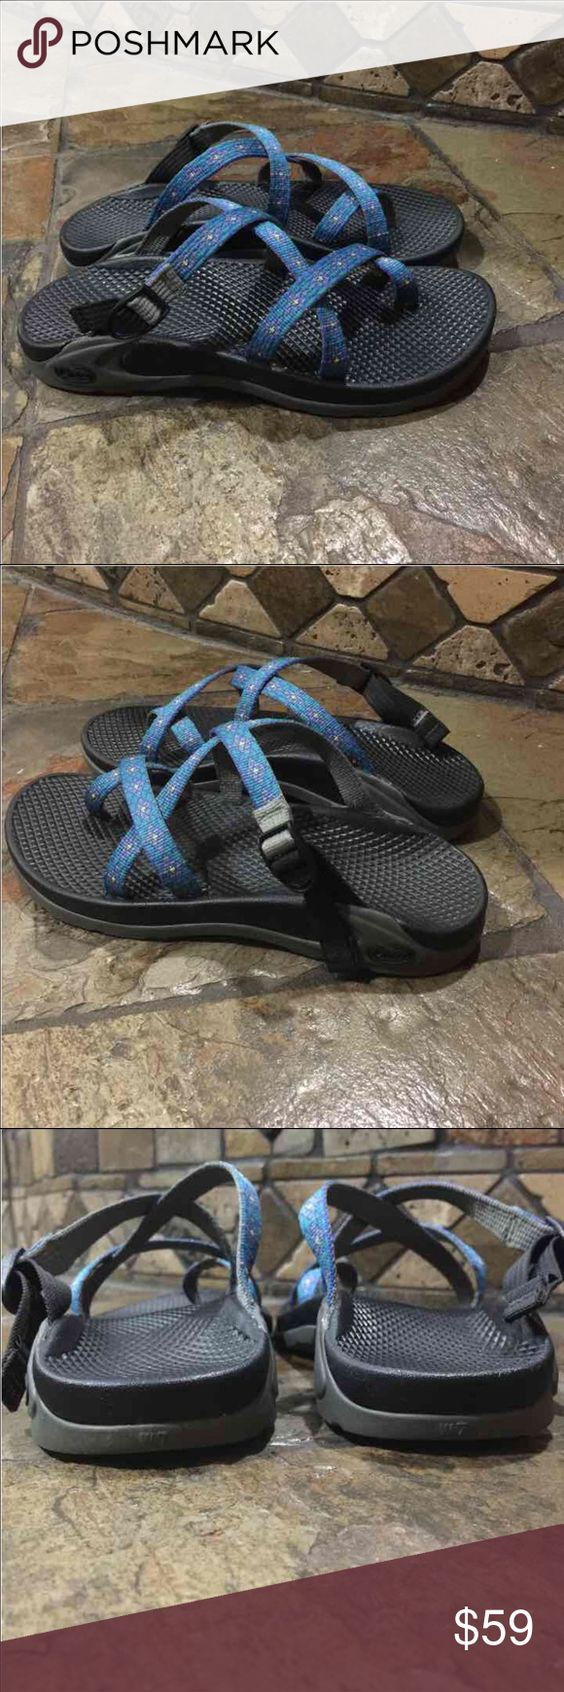 CHACOS blue sandals size 7 Chaco strappy shoes Popular brand sandal shoes . Great condition, lots of life left. Please don't buy if you're unsure of what your size is. This is a women's size 7. I ship fast! Blue straps, black & gray bottoms. I love this brand!!! This is not eligible for bundle discount, don't add this to a bundle. I ship fast! Chacos Shoes Sandals